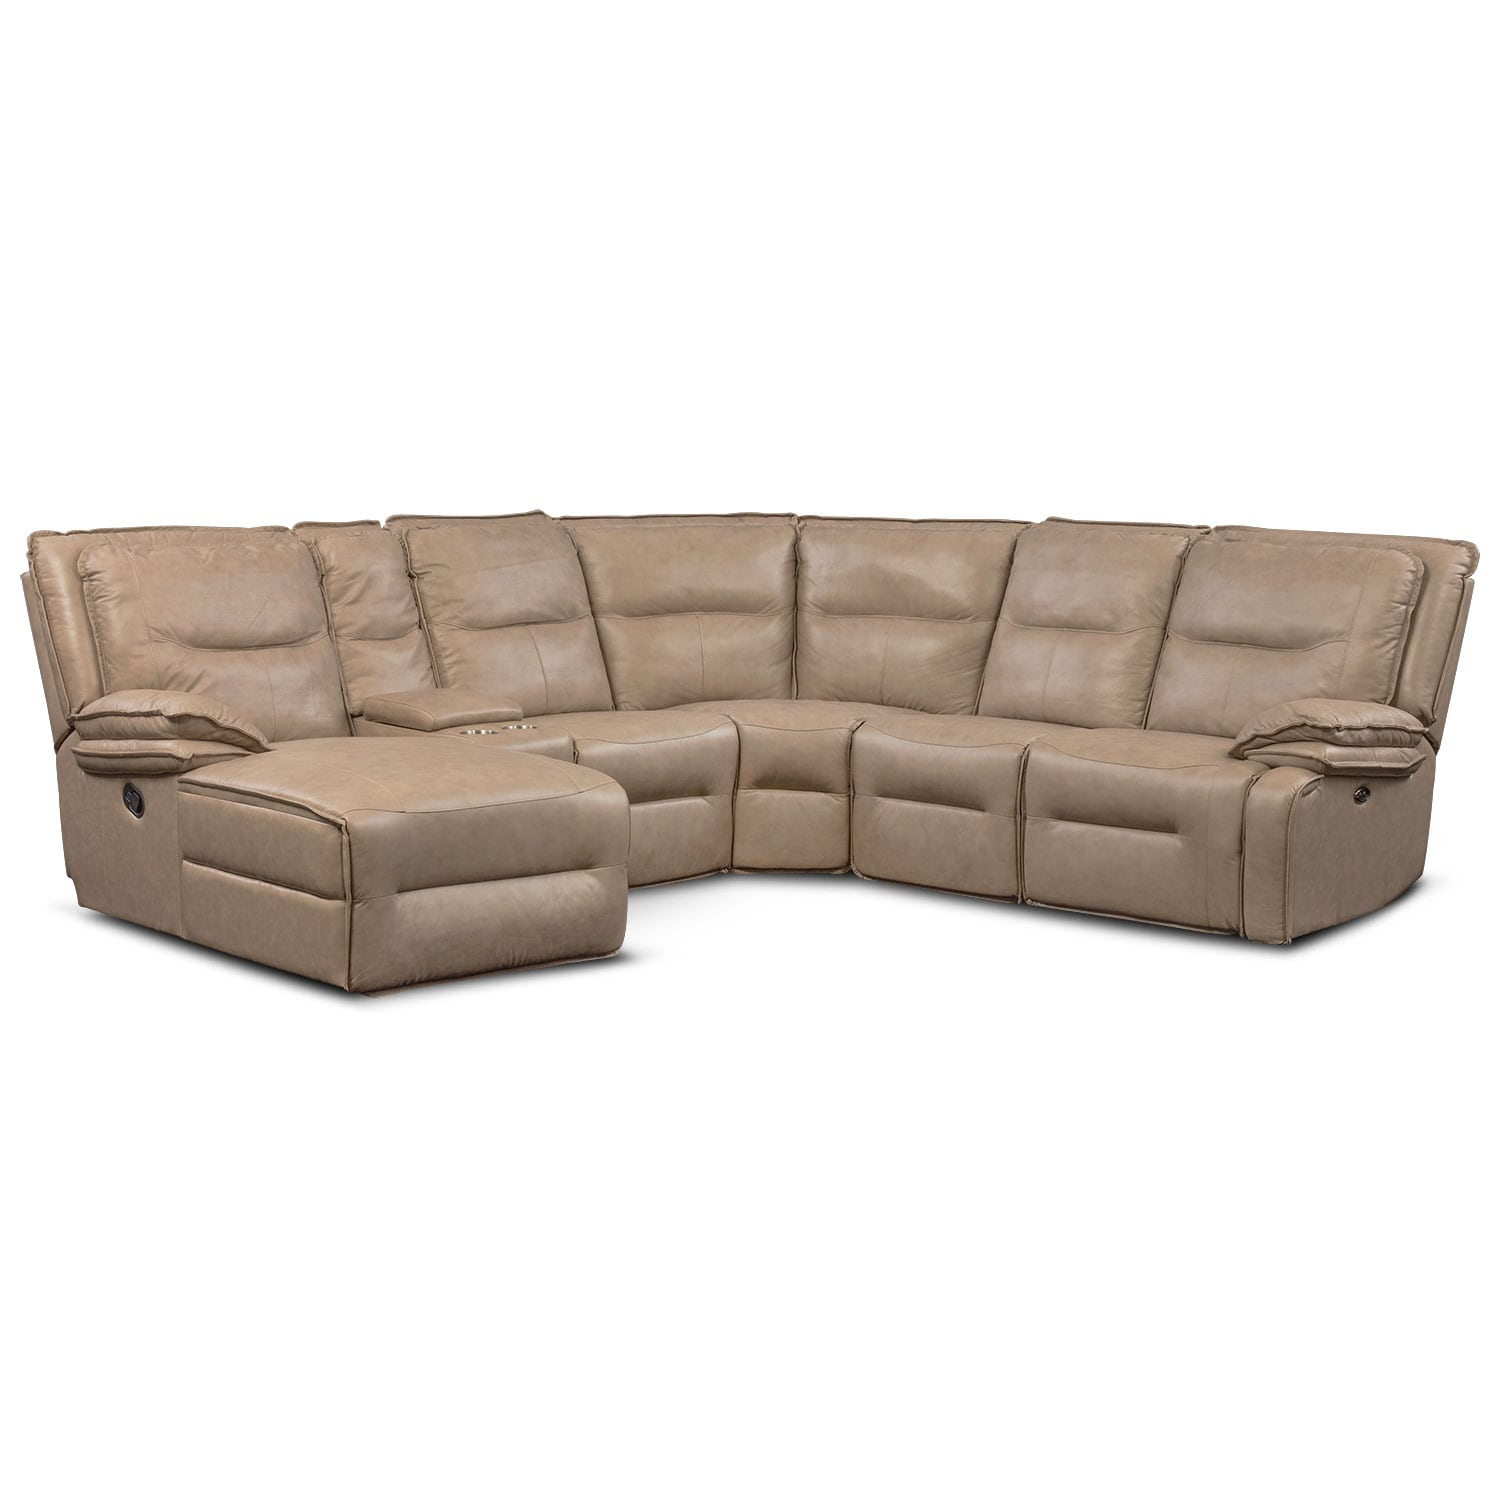 Nikki 6-Piece Power Reclining Sectional with 2 Recliners and Left-Facing Chaise - Taupe